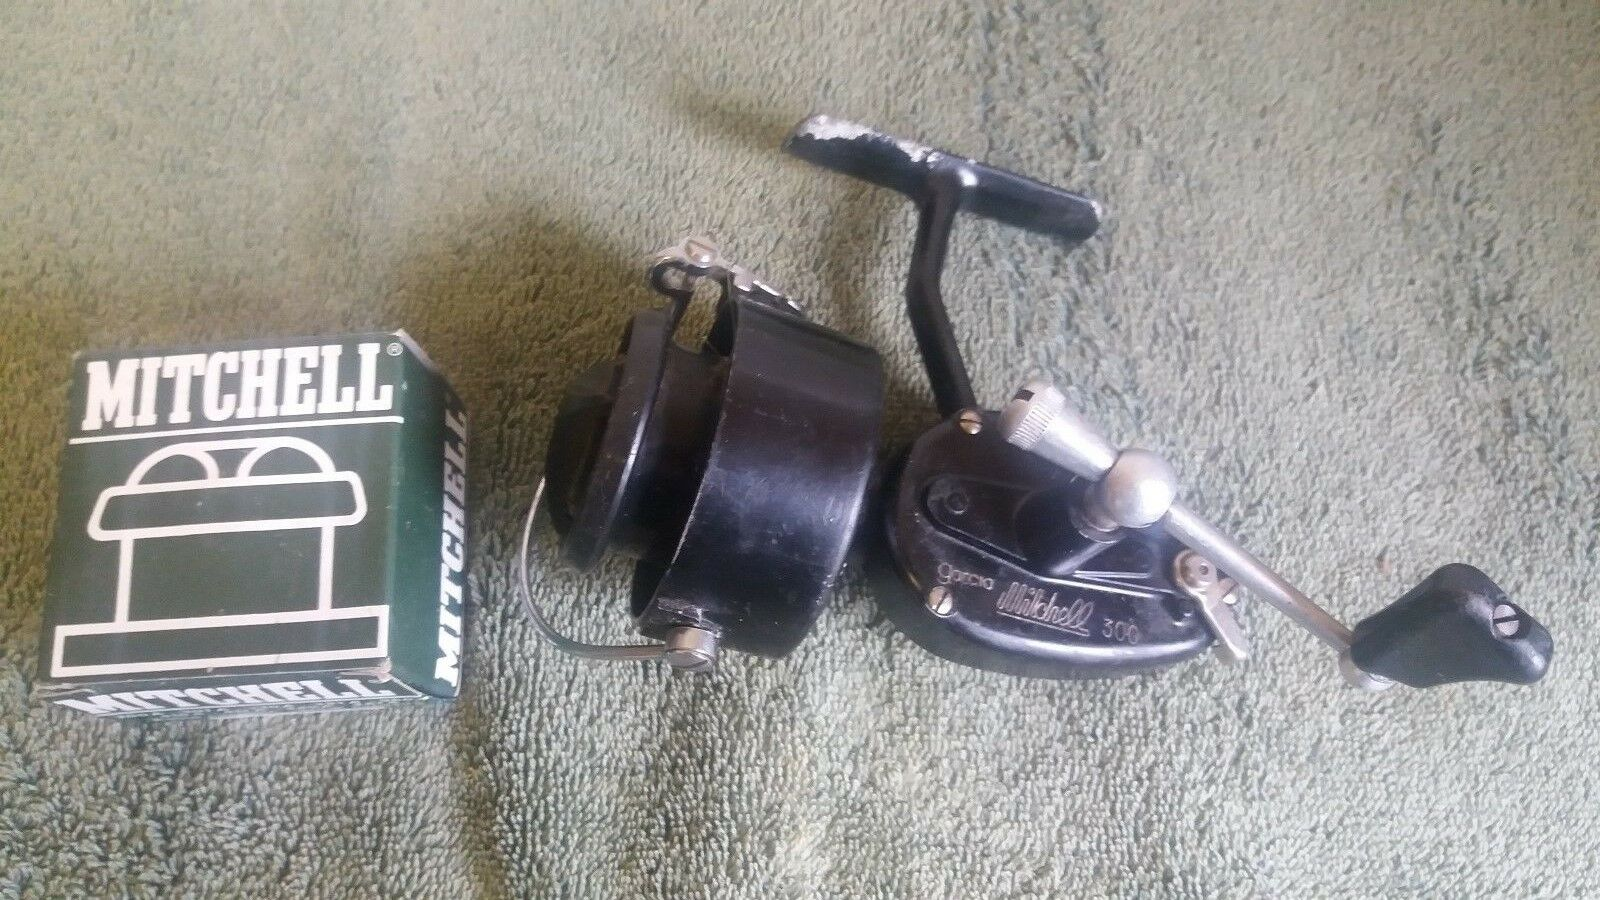 Vintage garcia mitchell 300 high speed fishing reel for Mitchell 300 fishing reel